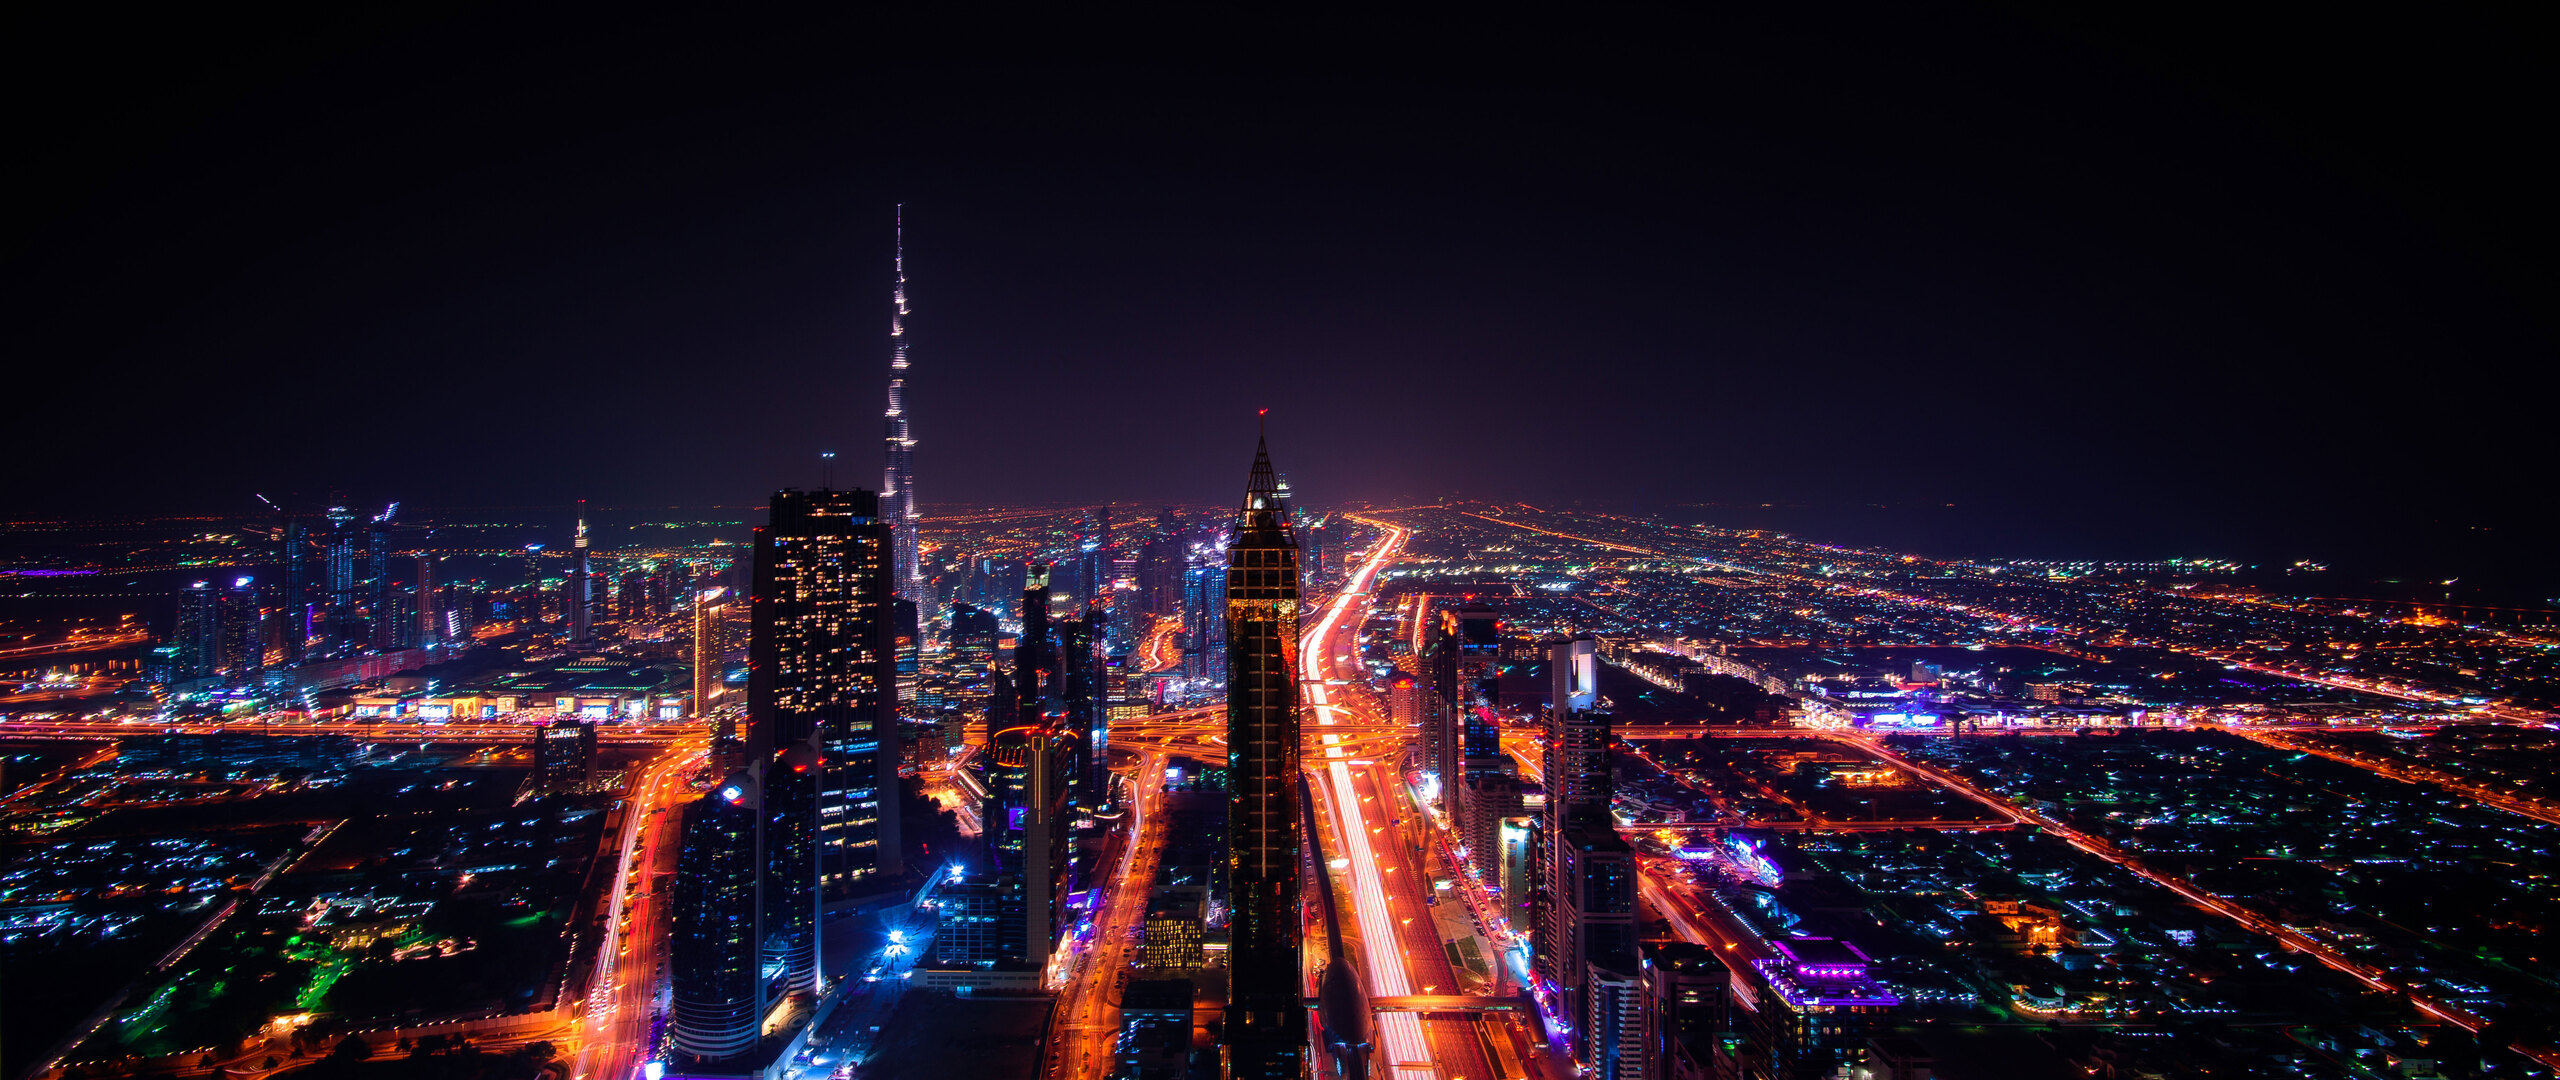 2560x1080 Dubai Cityscape Buildings Lights 8k 2560x1080